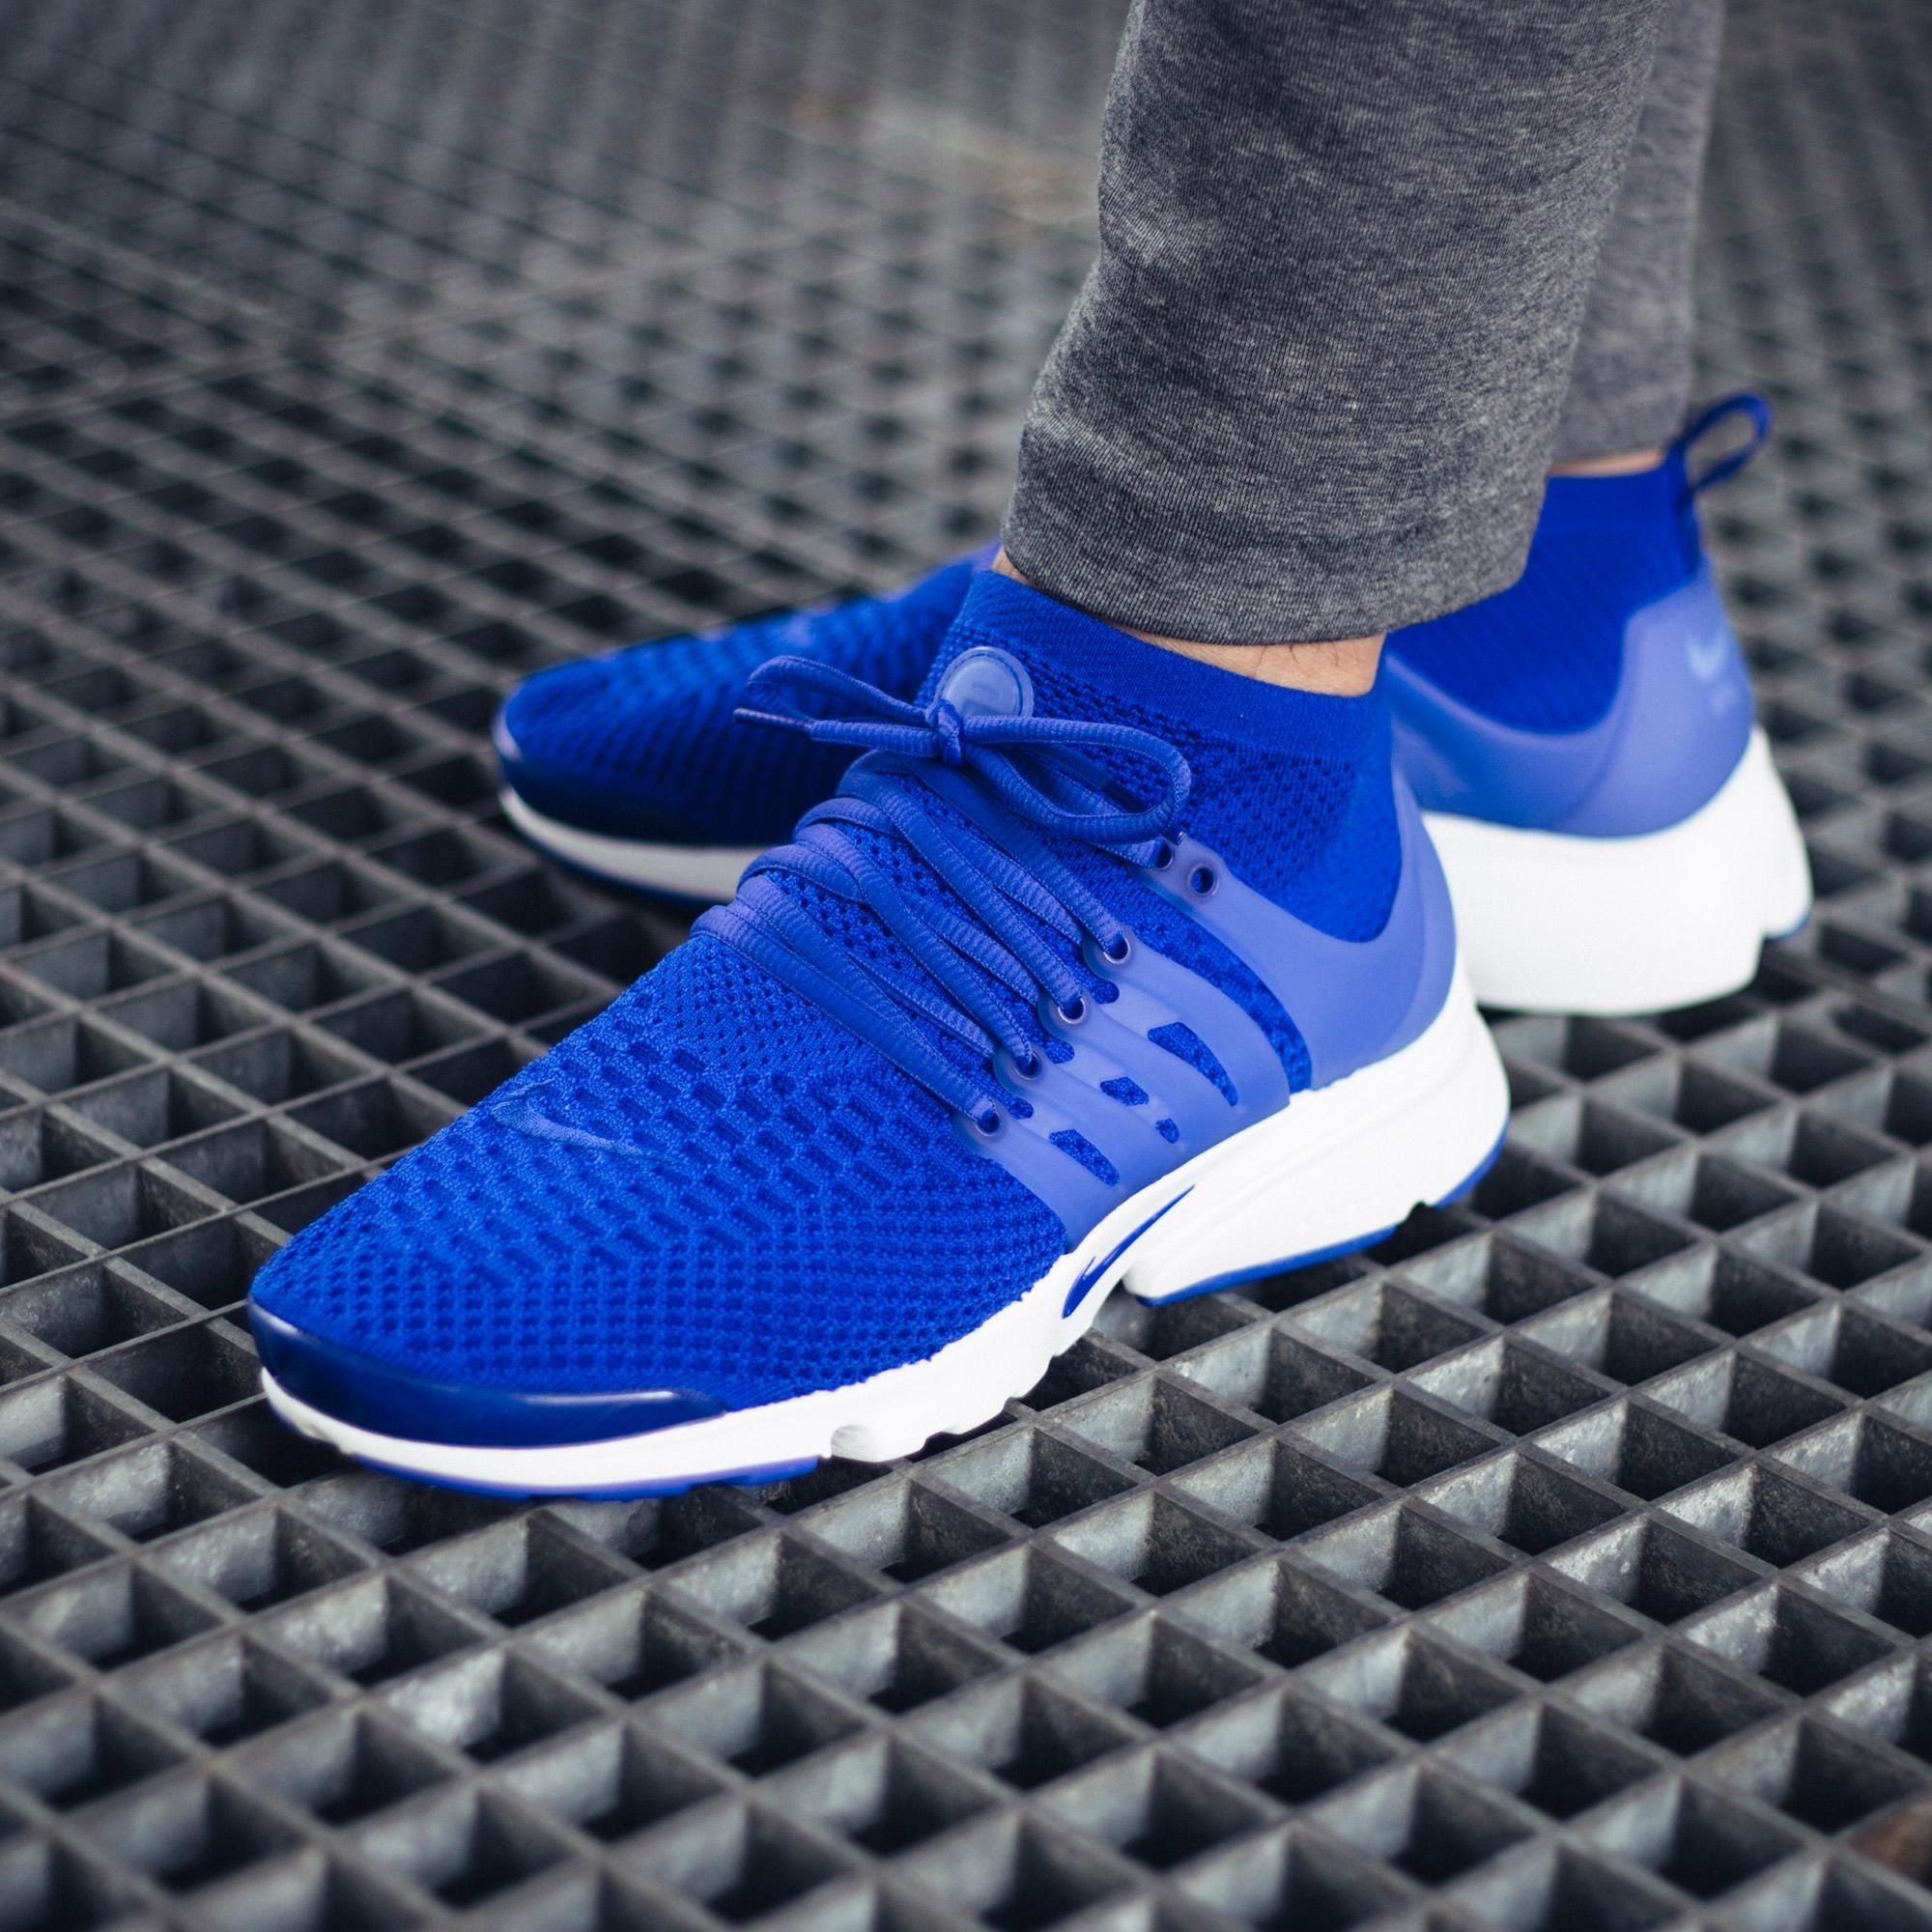 990e0ec1c4f7 Keep It Royal With The Nike Air Presto Flyknit Ultra Racer Blue ...